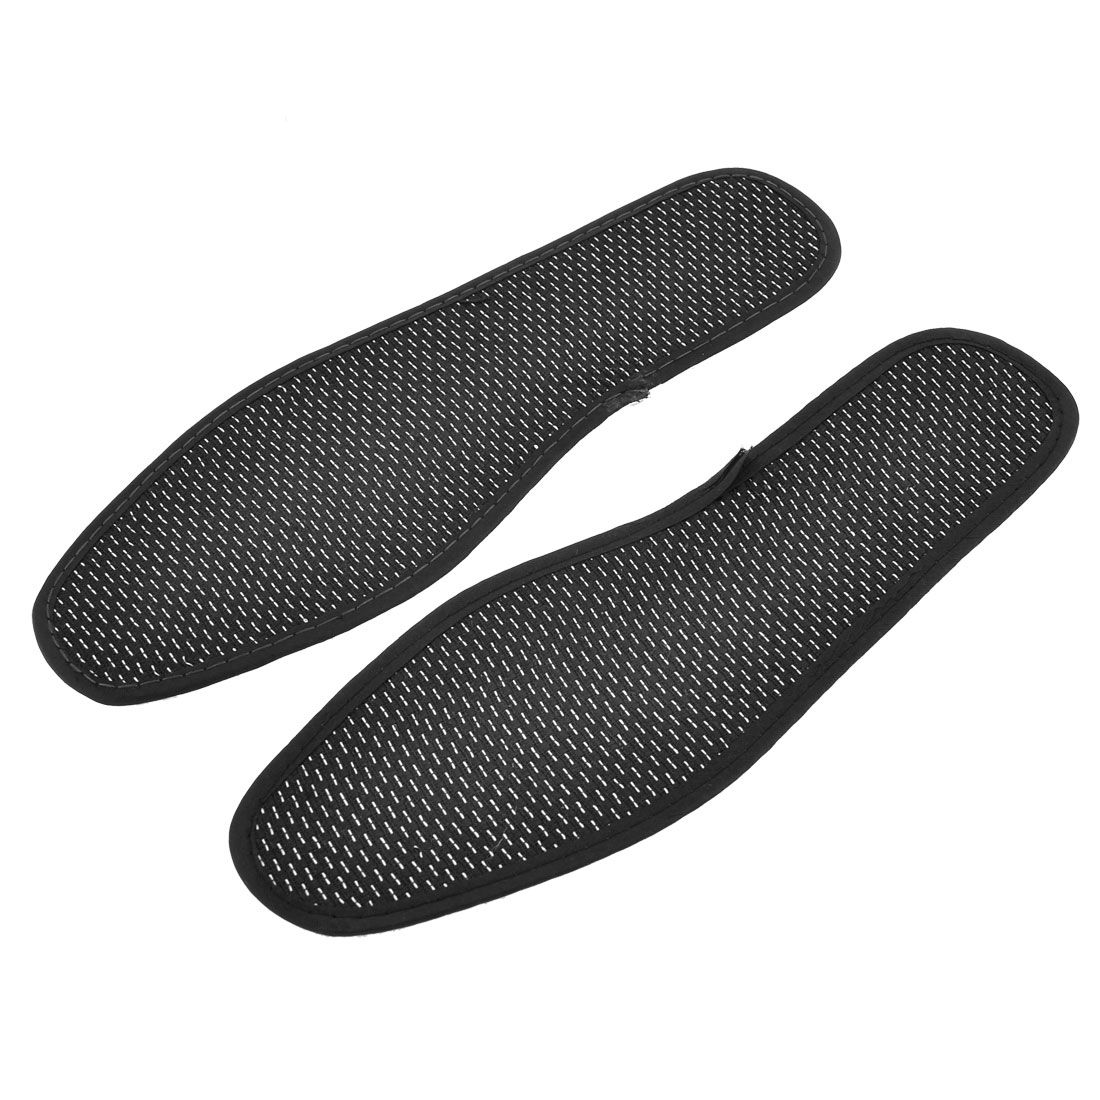 Man Anti-slip Insoles Shoe Pads Black White Pair EU Size 40